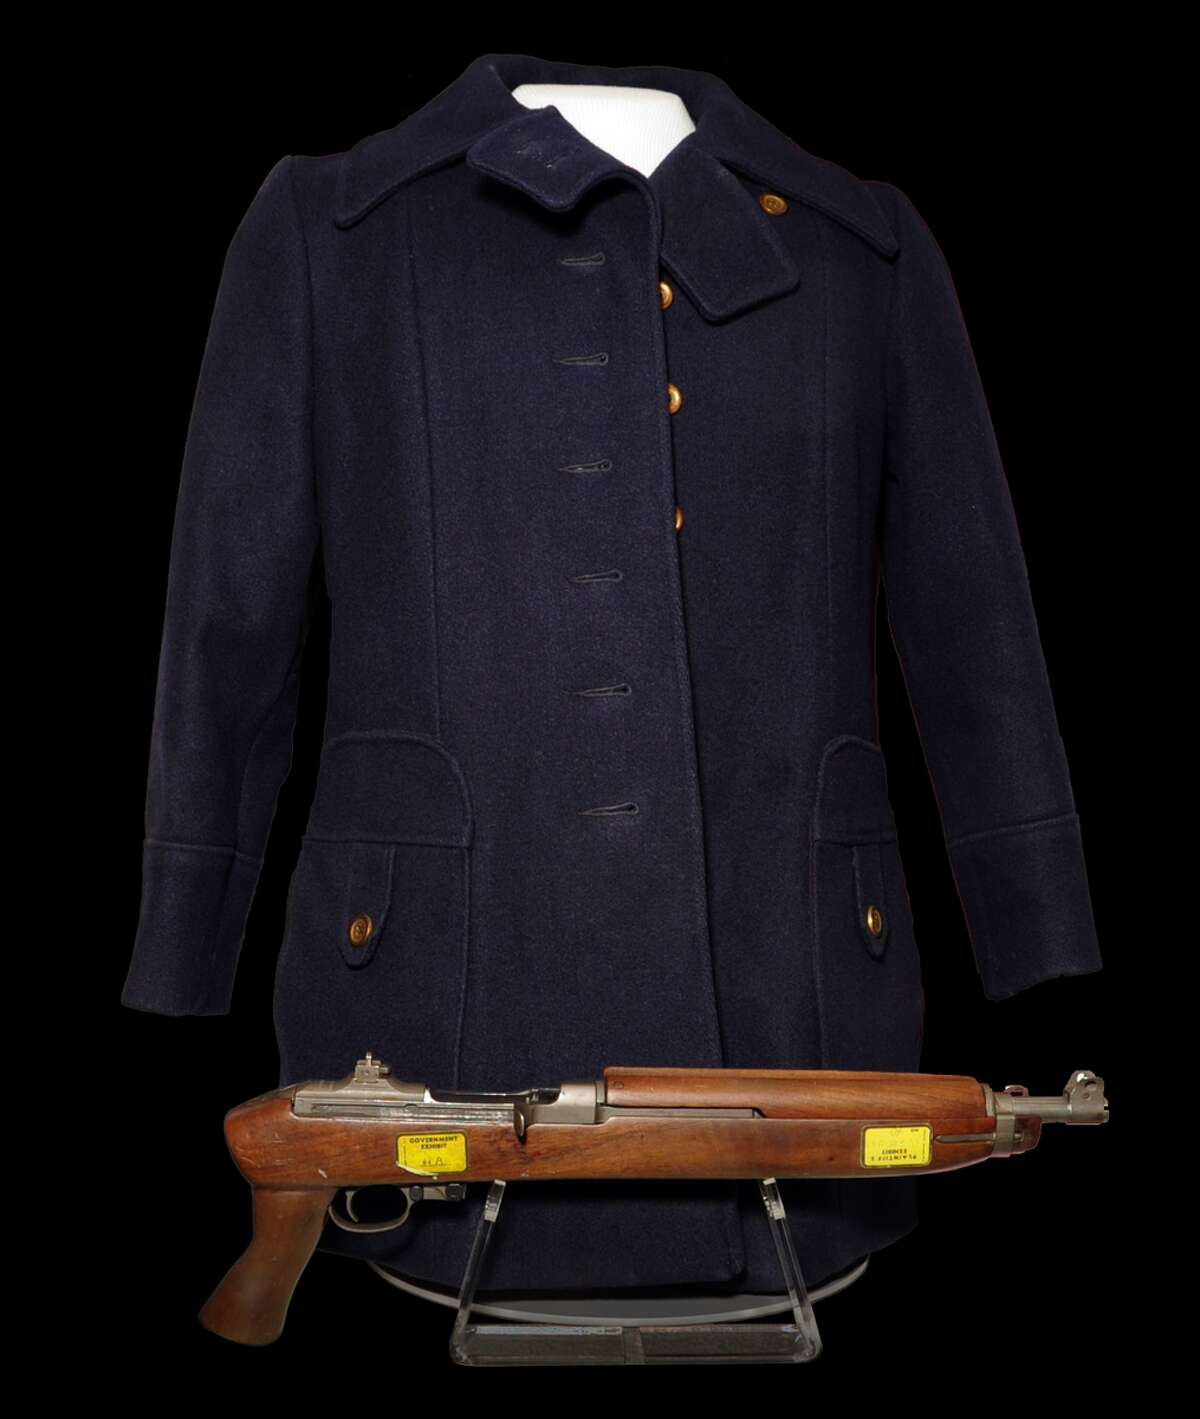 Patty Hearst Coat and Weapon The coat worn and gun brandished by heiress Patty Hearst during the infamous SLA bank robbery she was photographed at.